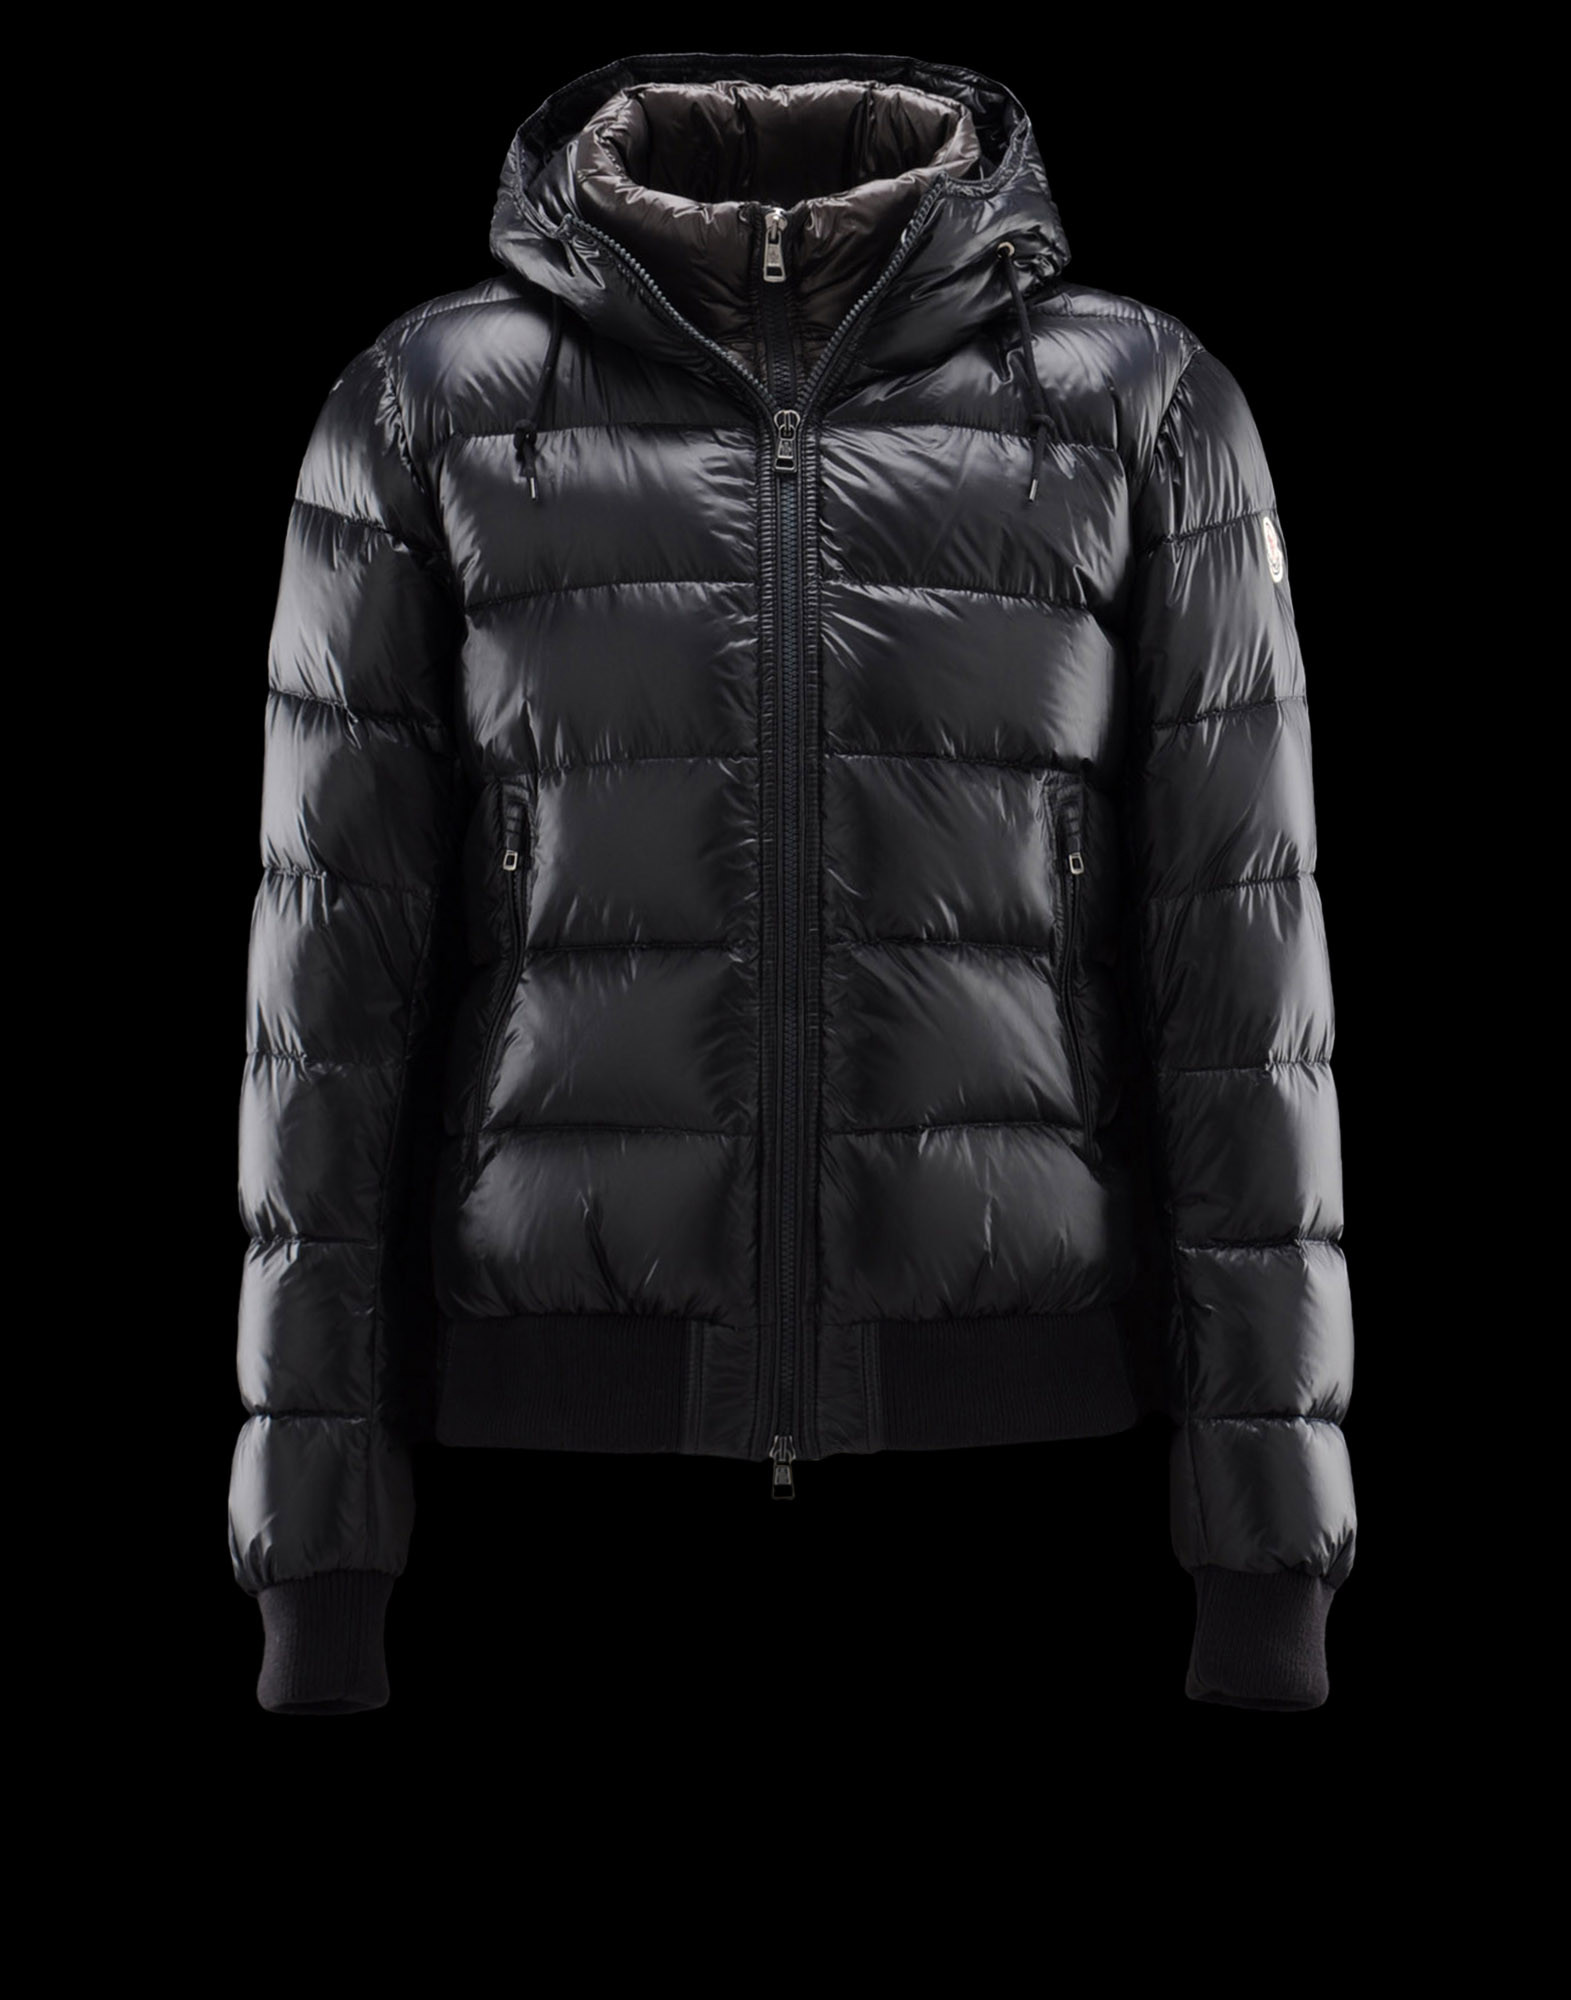 825362 Moncler Outlet Orlando Moncler Store Moncler Jacket For Women  - 80% Off